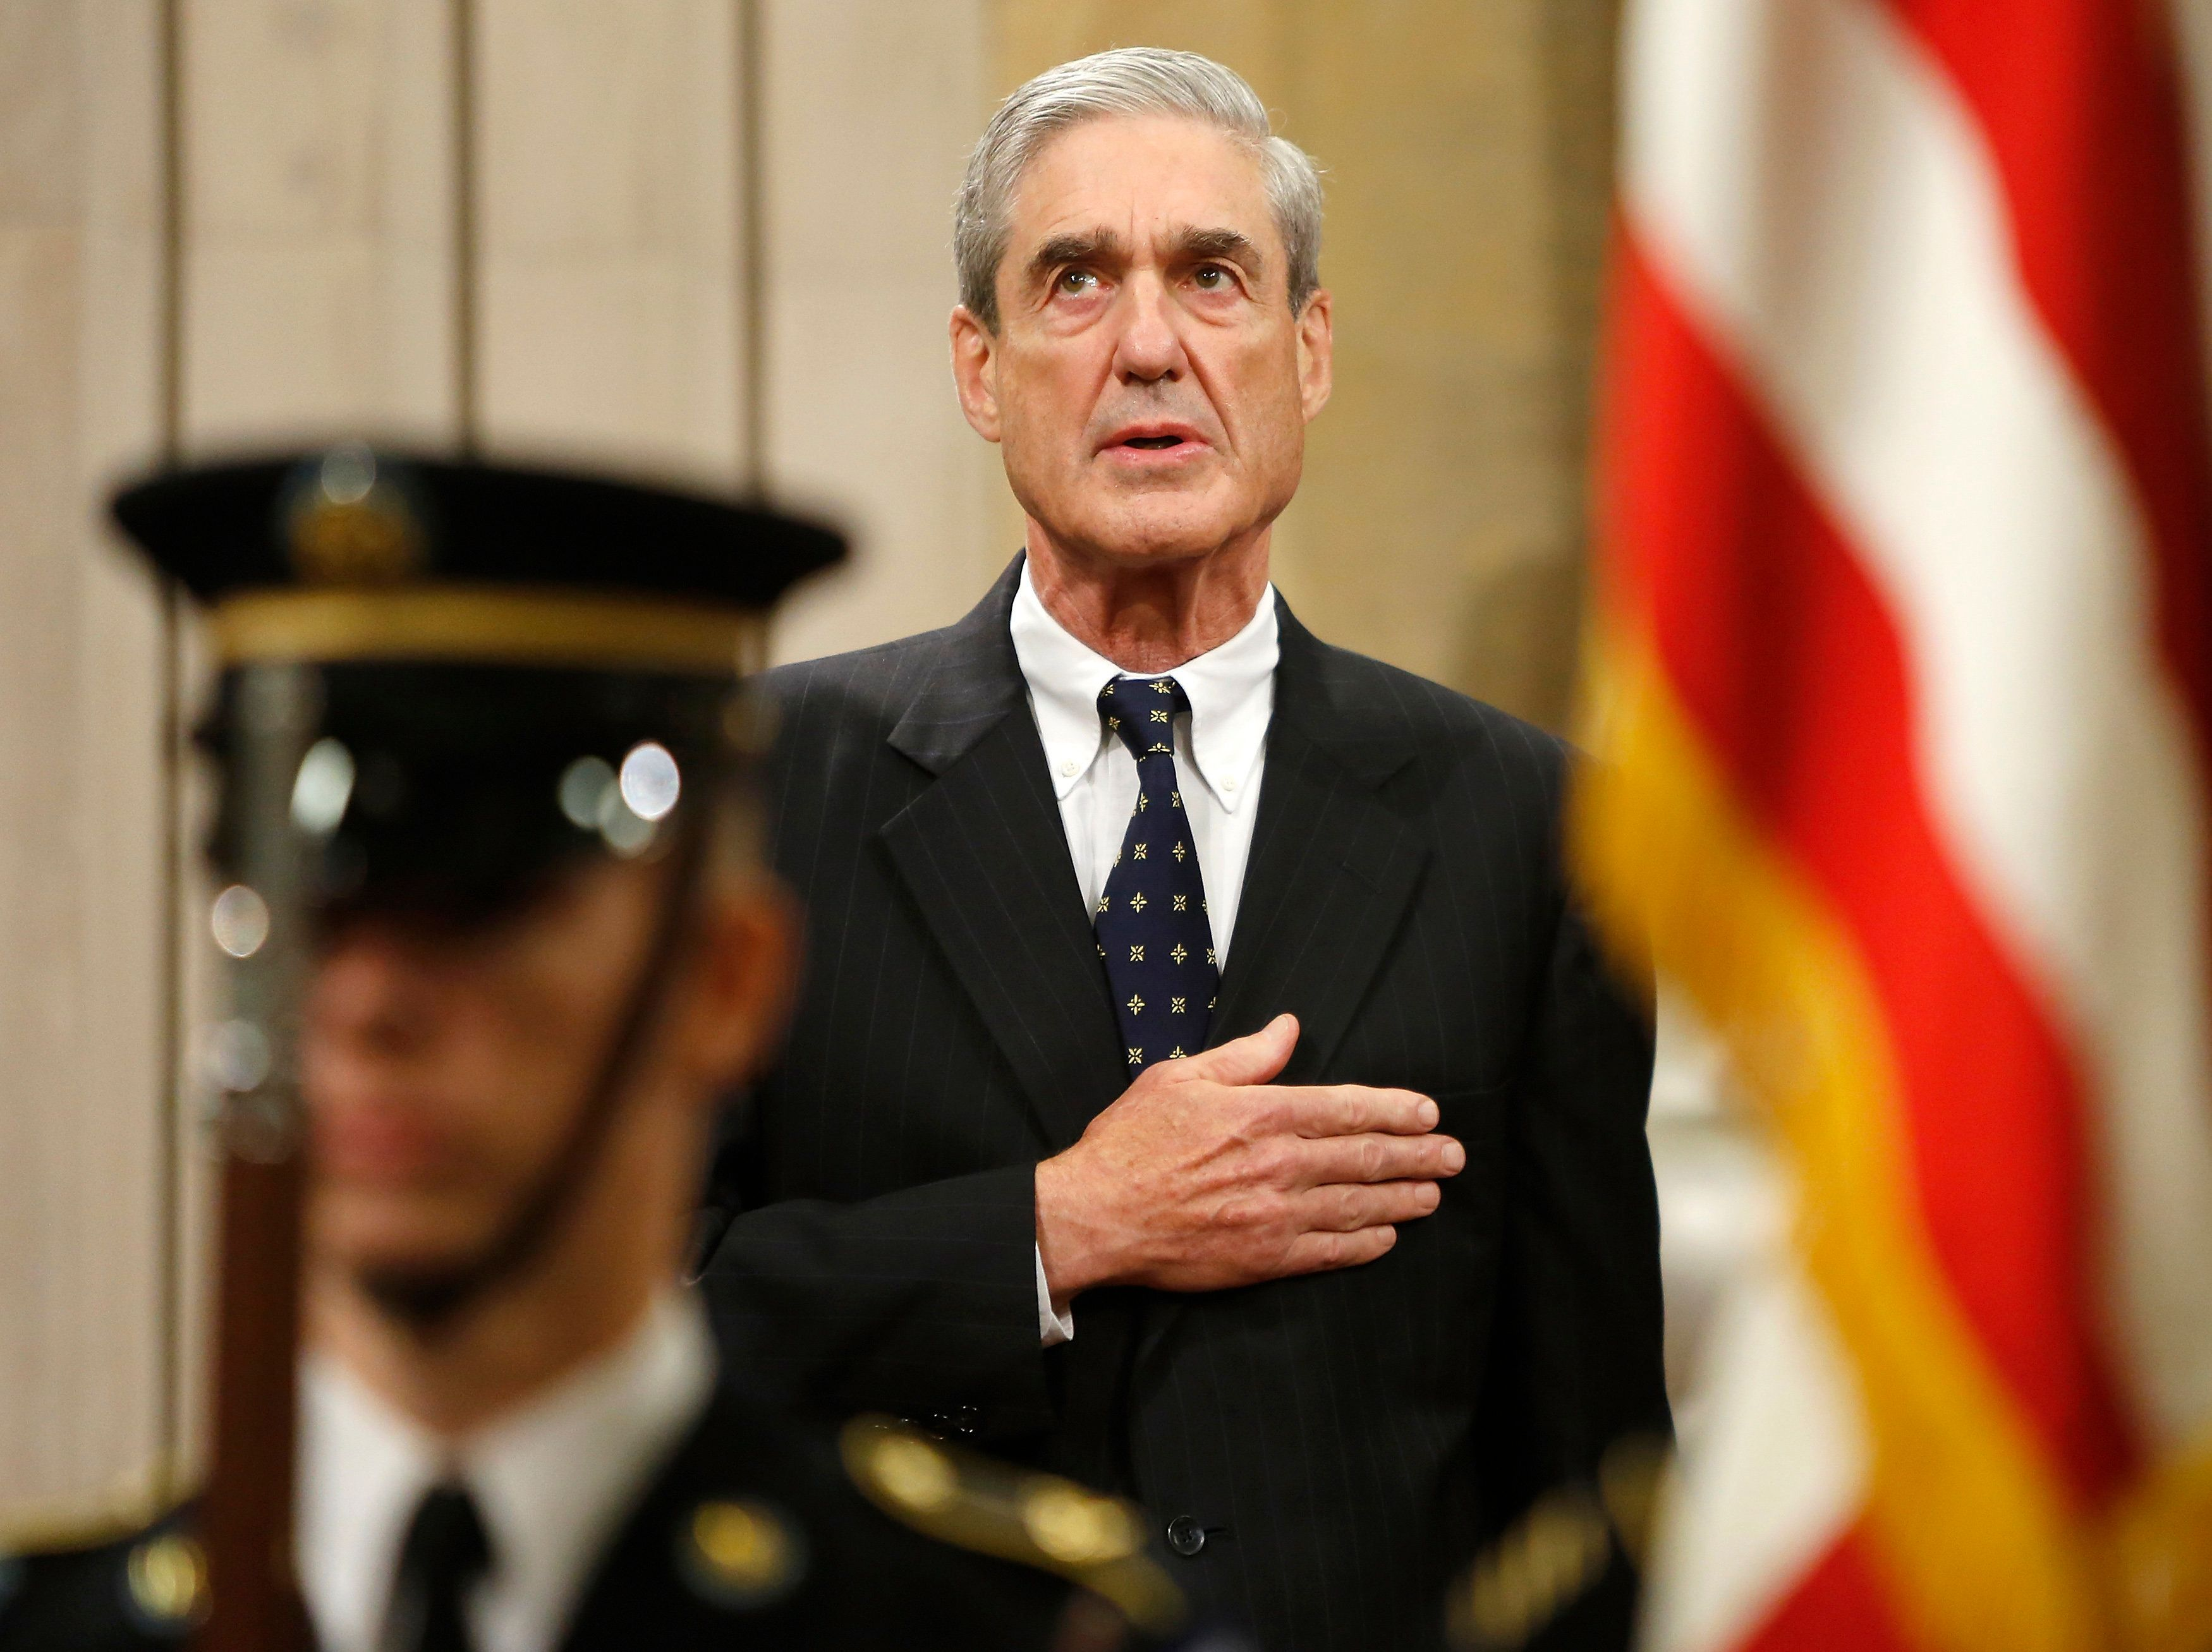 Robert Mueller was appointed as special counsel to lead the investigation into ties between Russia and Trump's associates, bu